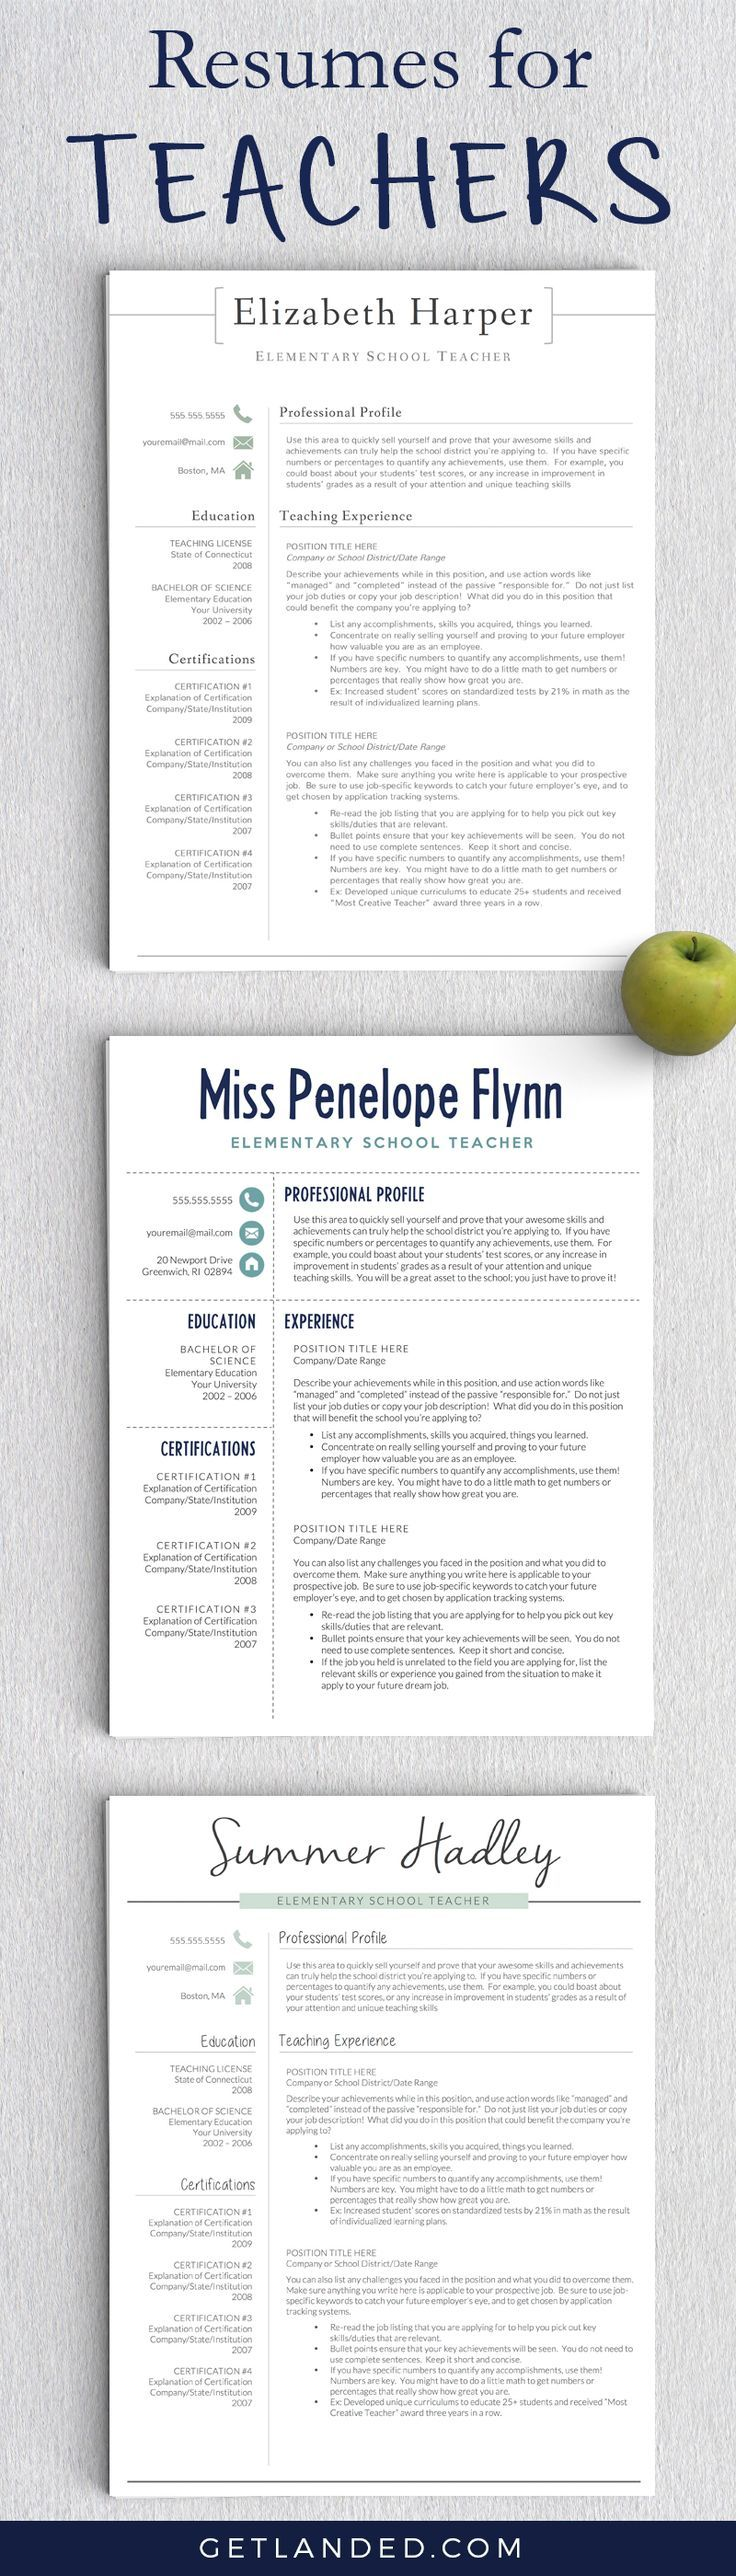 resumes designed for teachers and educators teacher resume teacher resume tips educator resume - Tips On Resumes